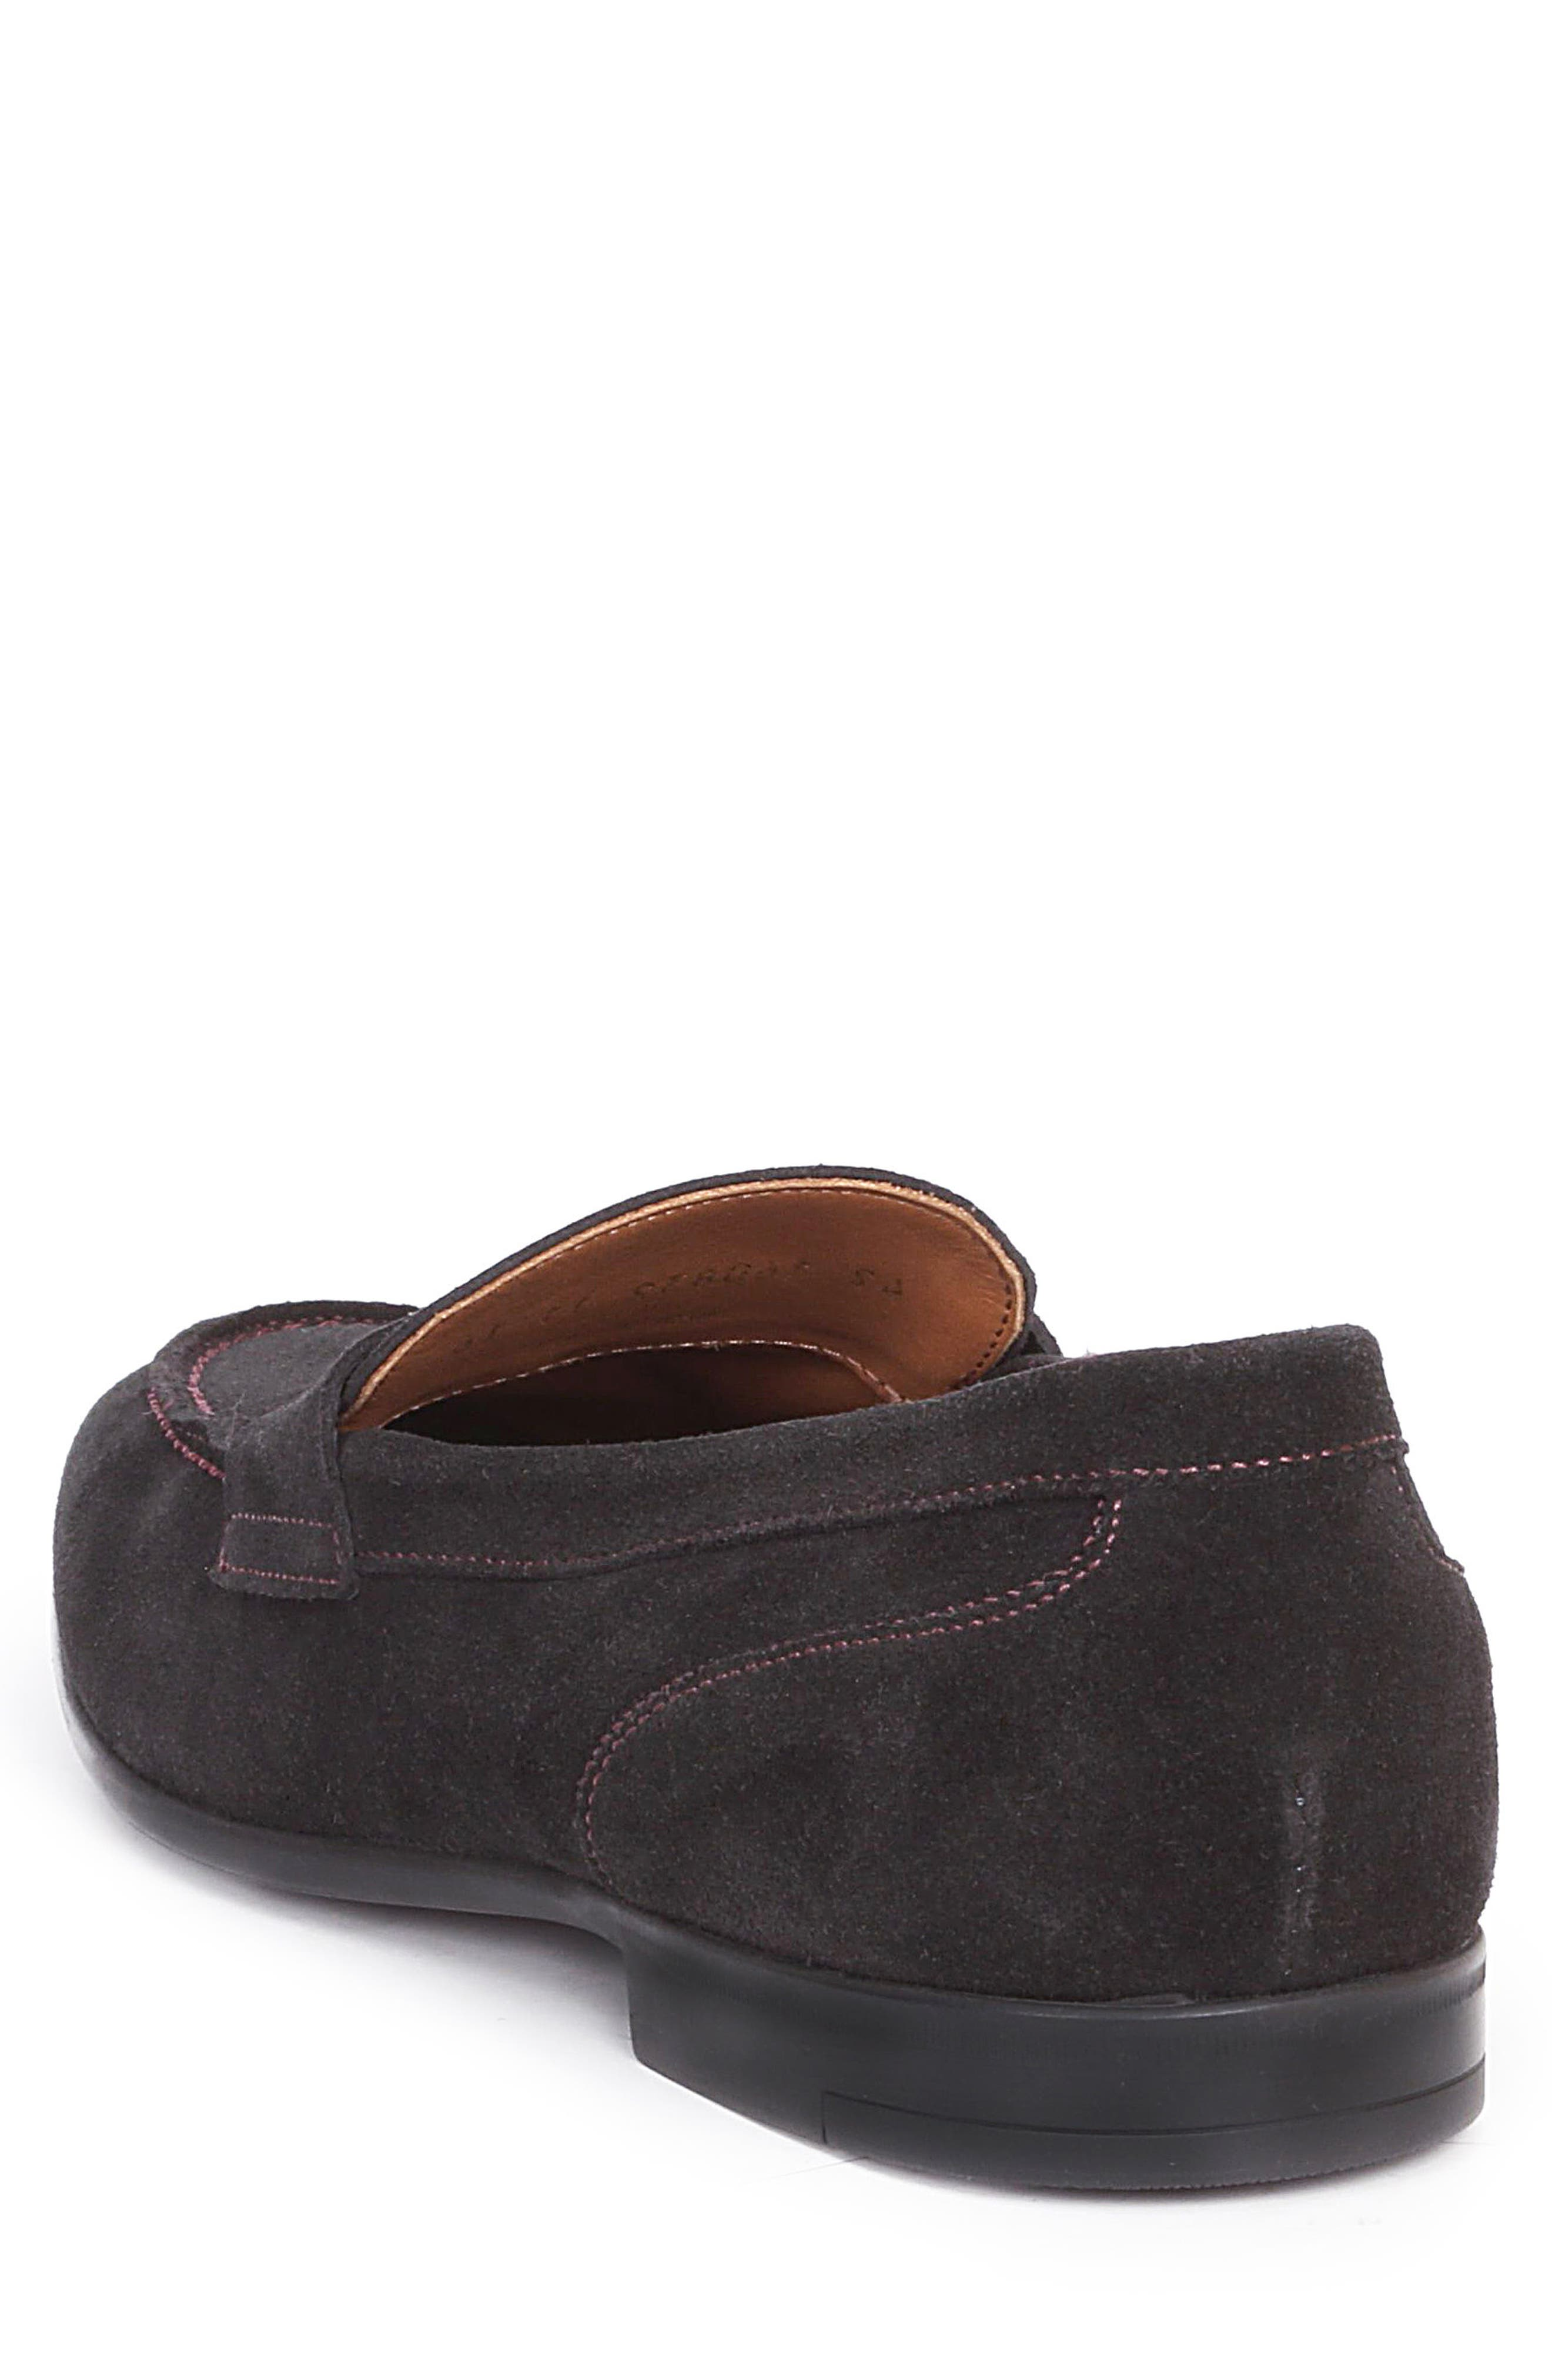 Silas Penny Loafer,                             Alternate thumbnail 2, color,                             Navy